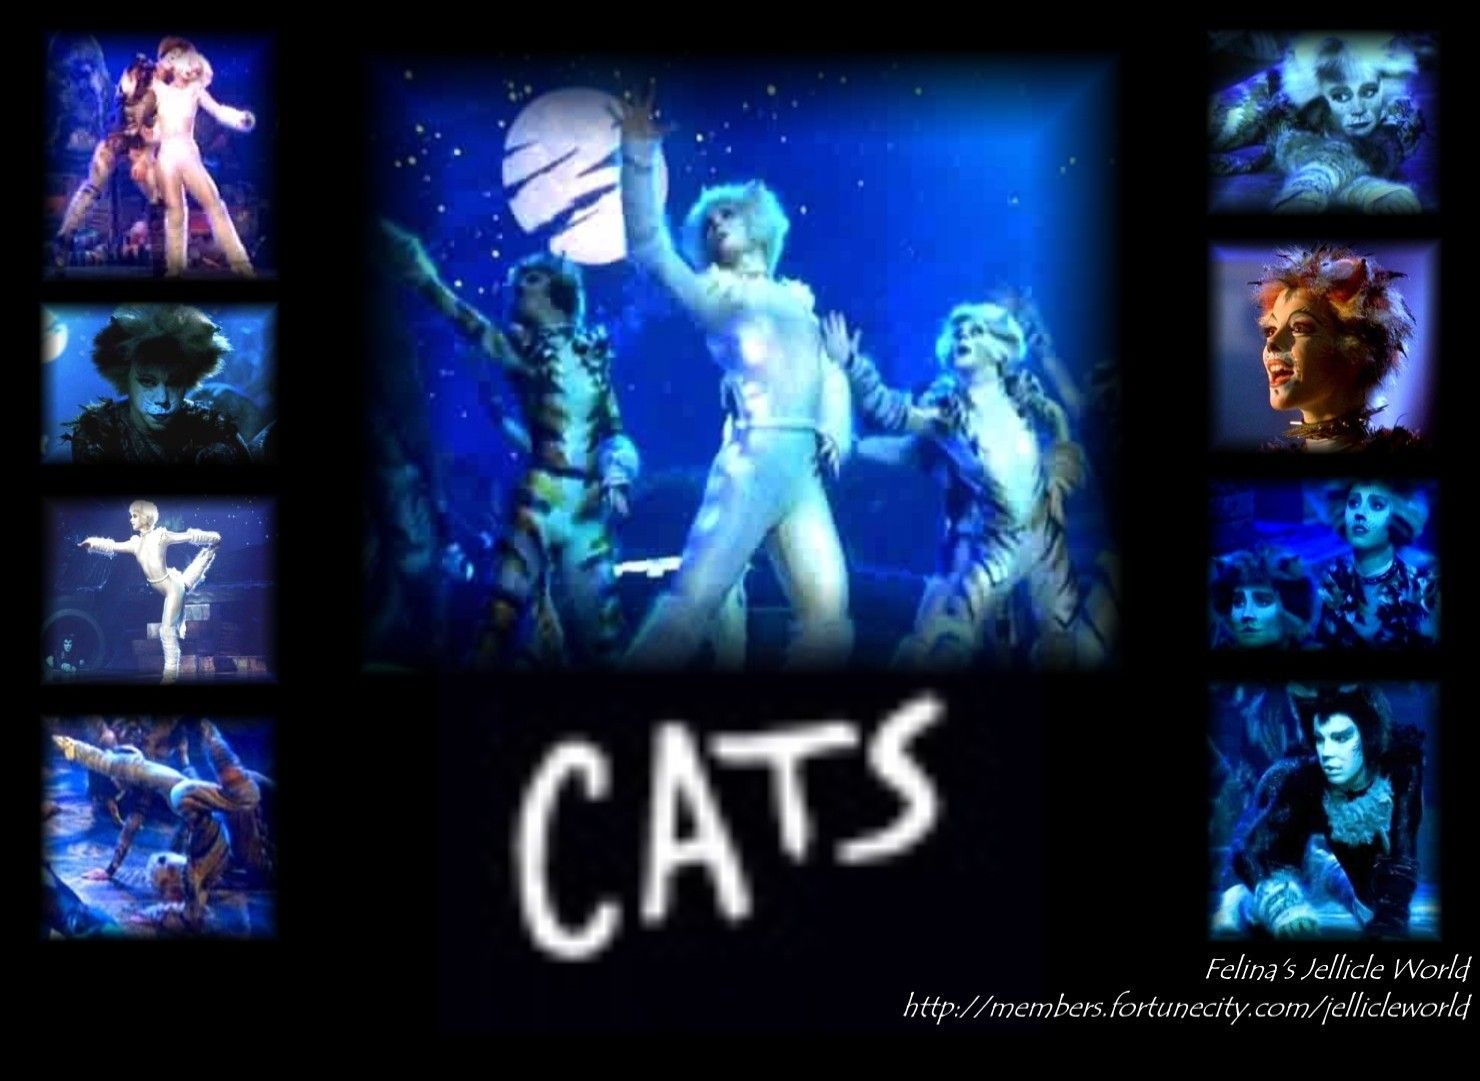 The Best Musical Ever